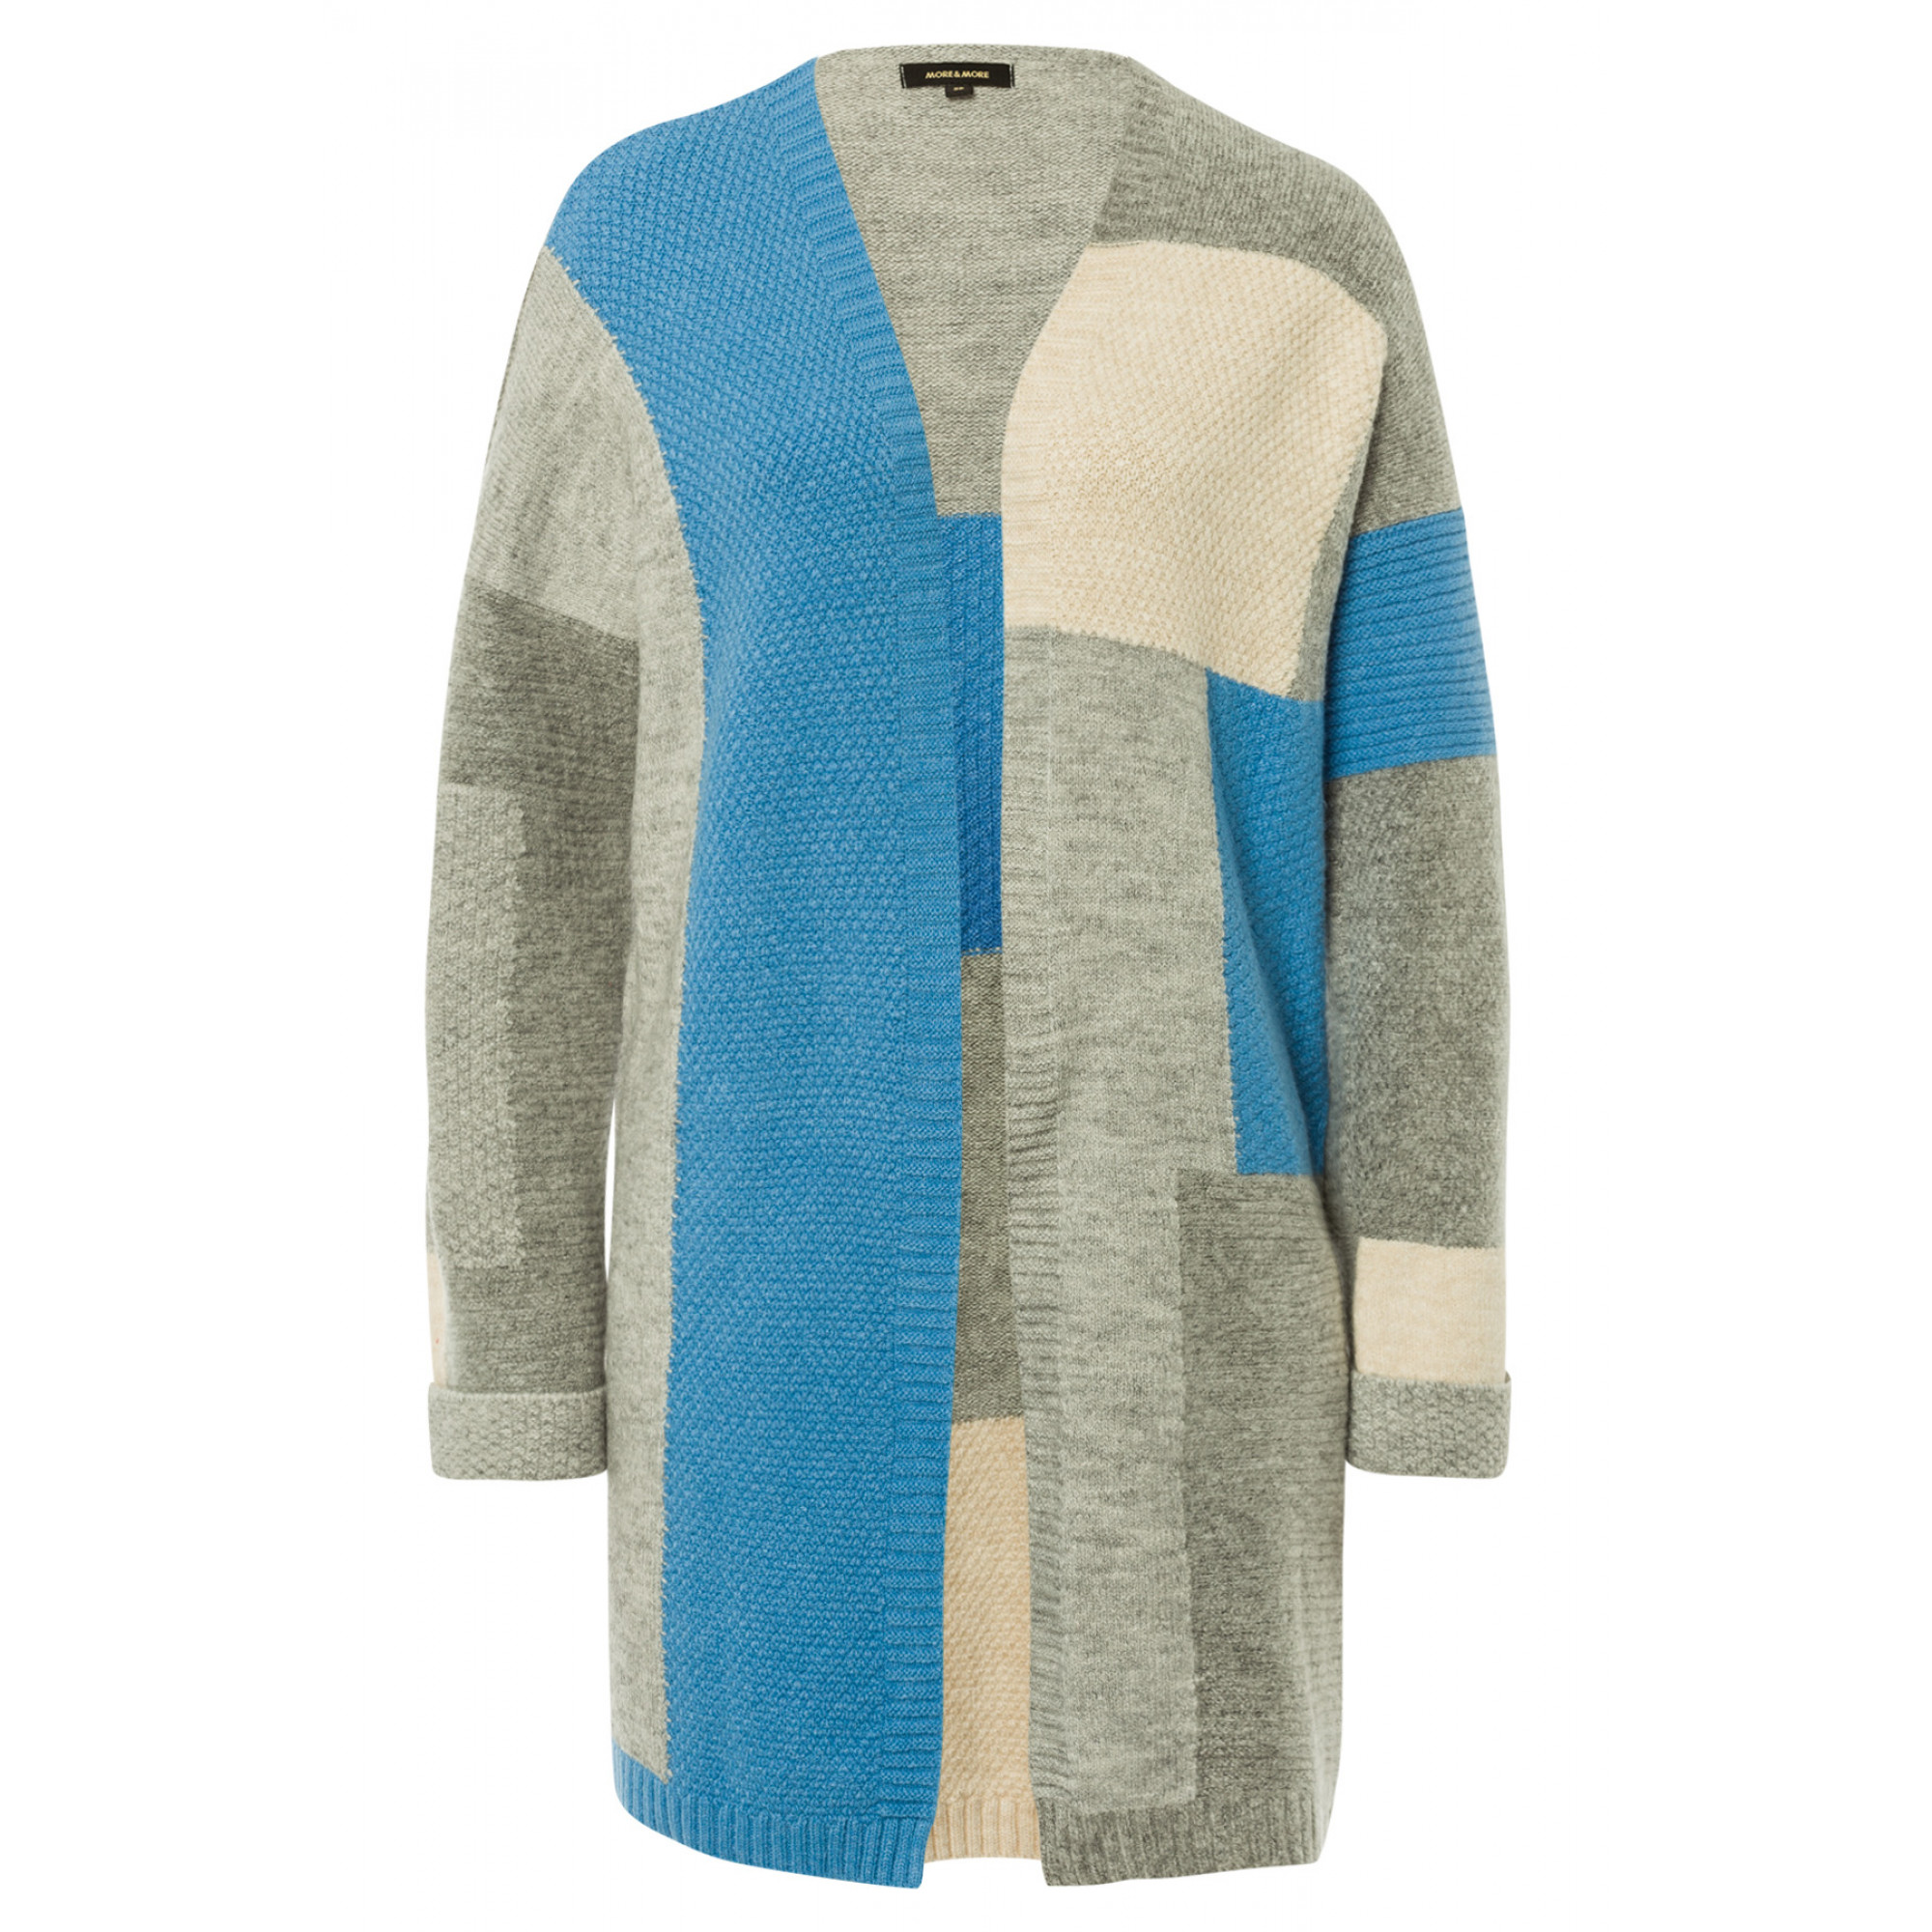 Cardigan, Colorblock 91111212-4717 1